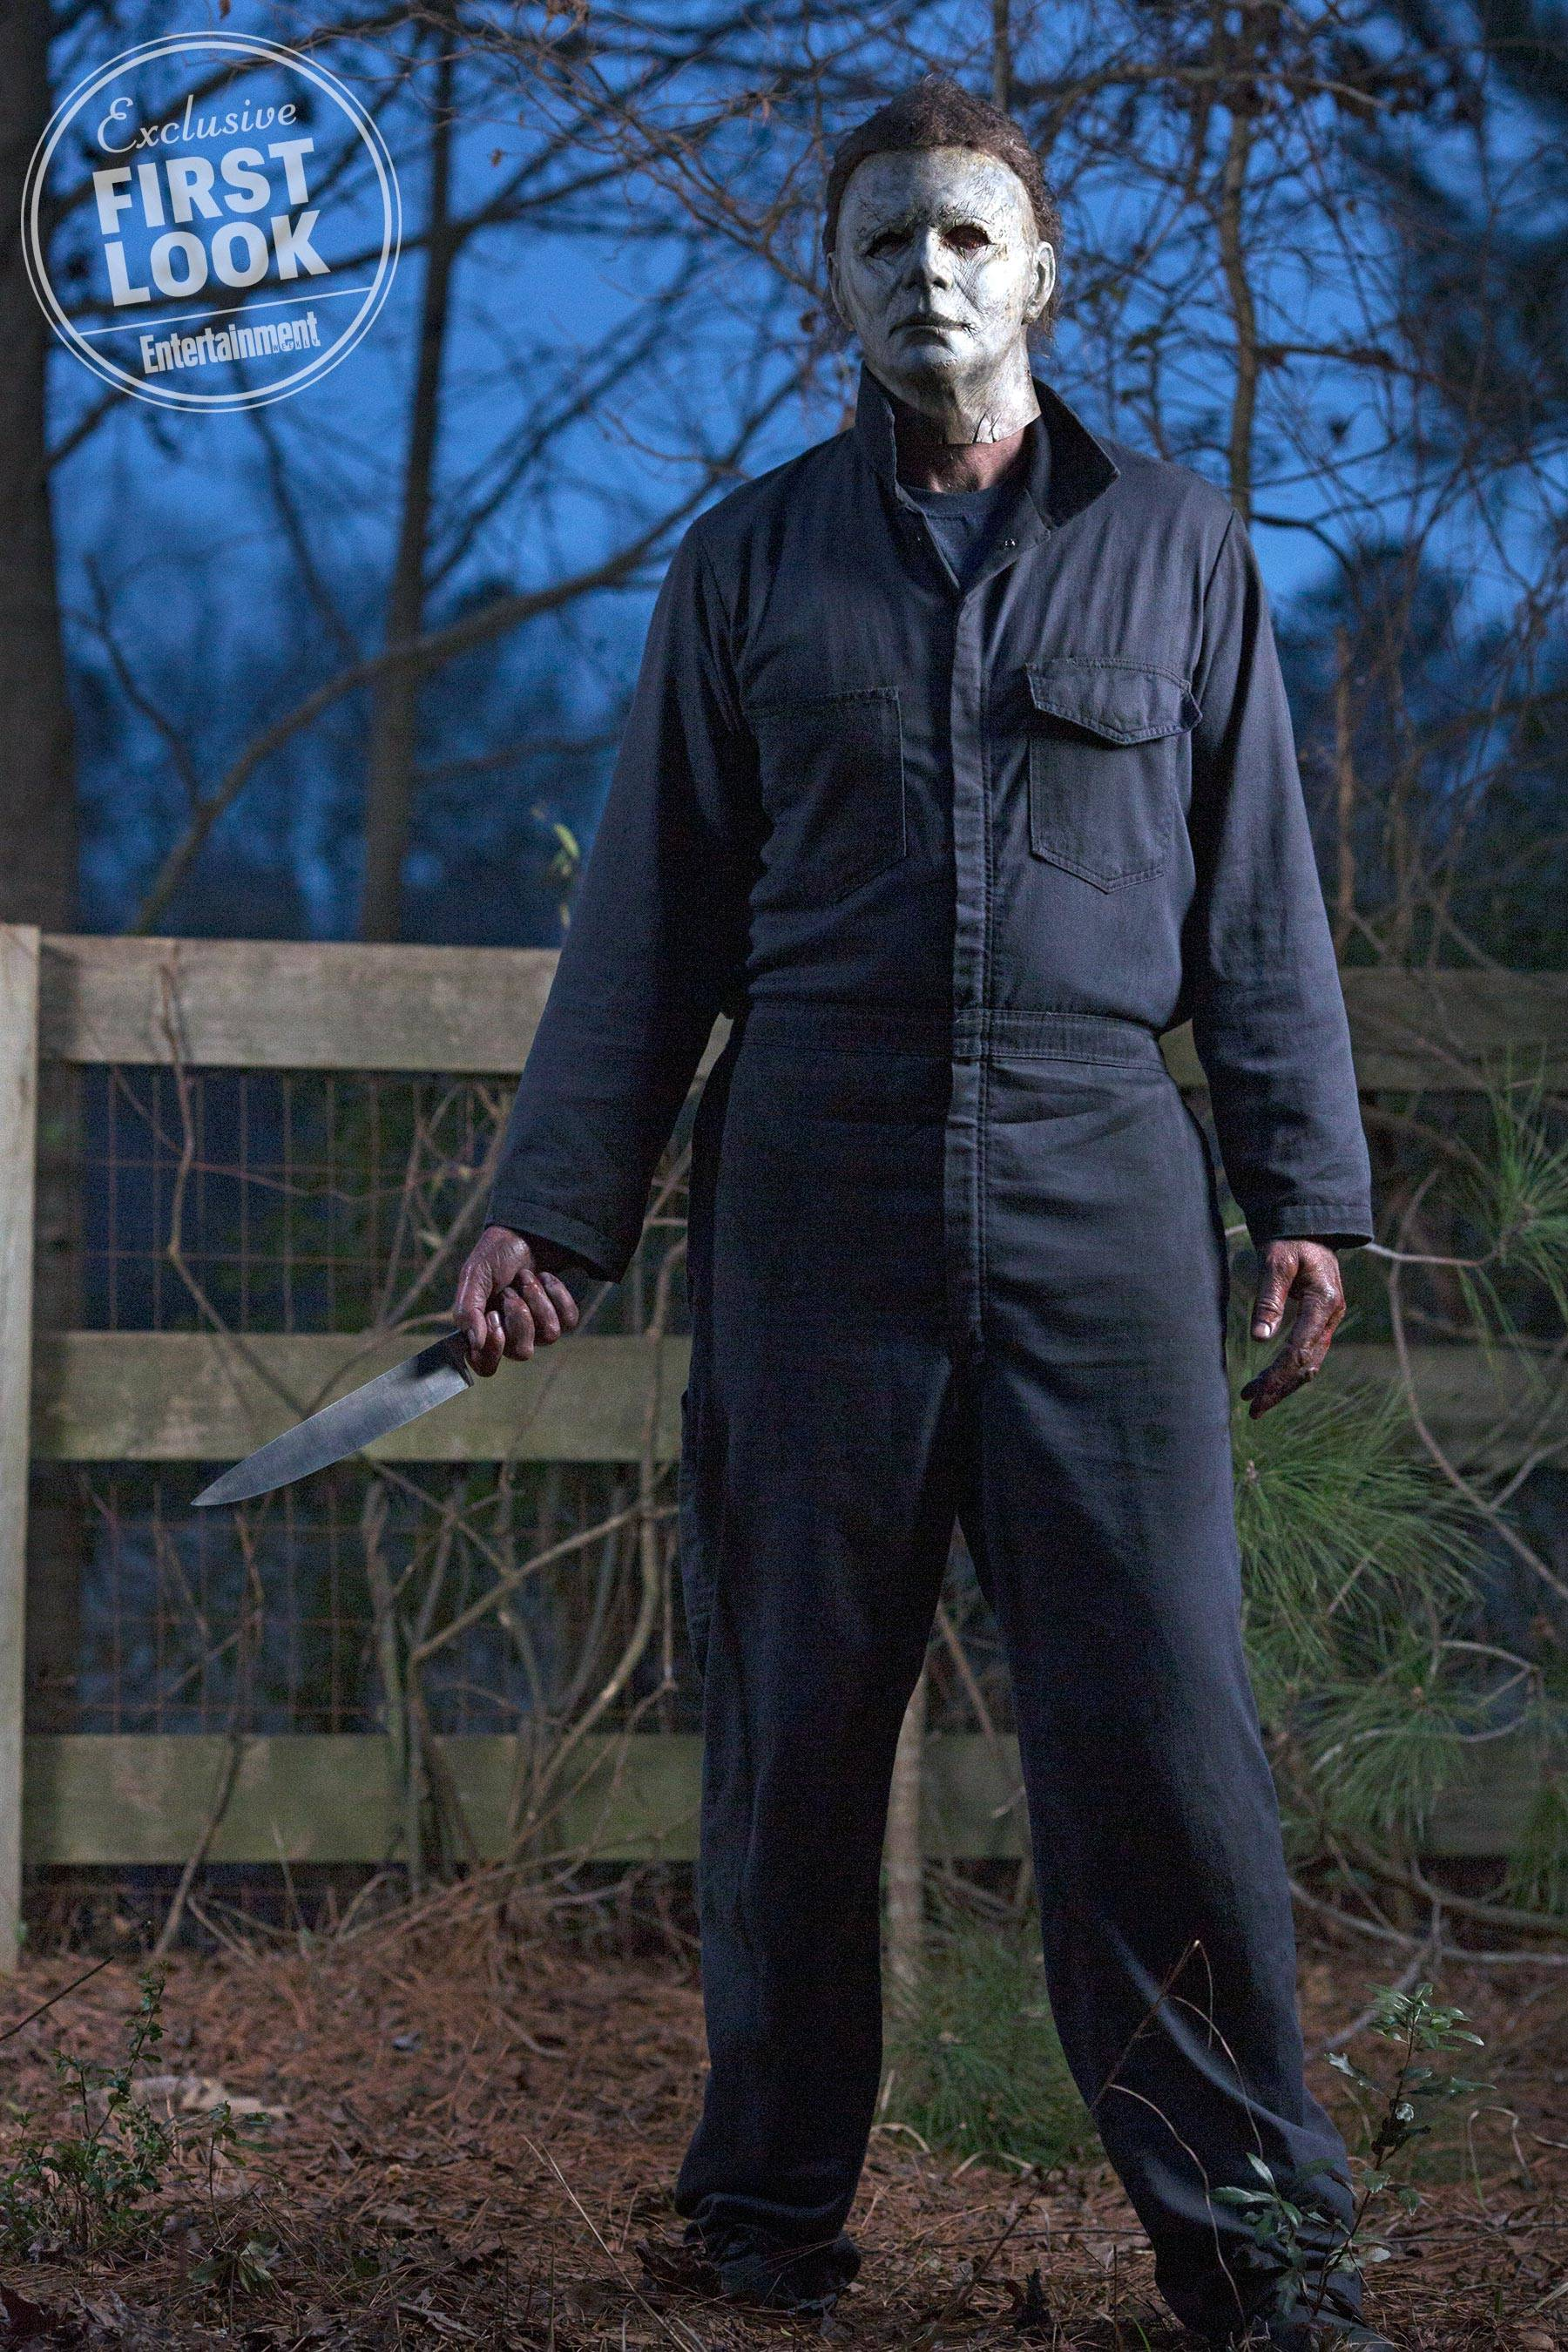 new-photo-of-michael-meyers-being-a-creepy-murderous-stalker-in-halloween2